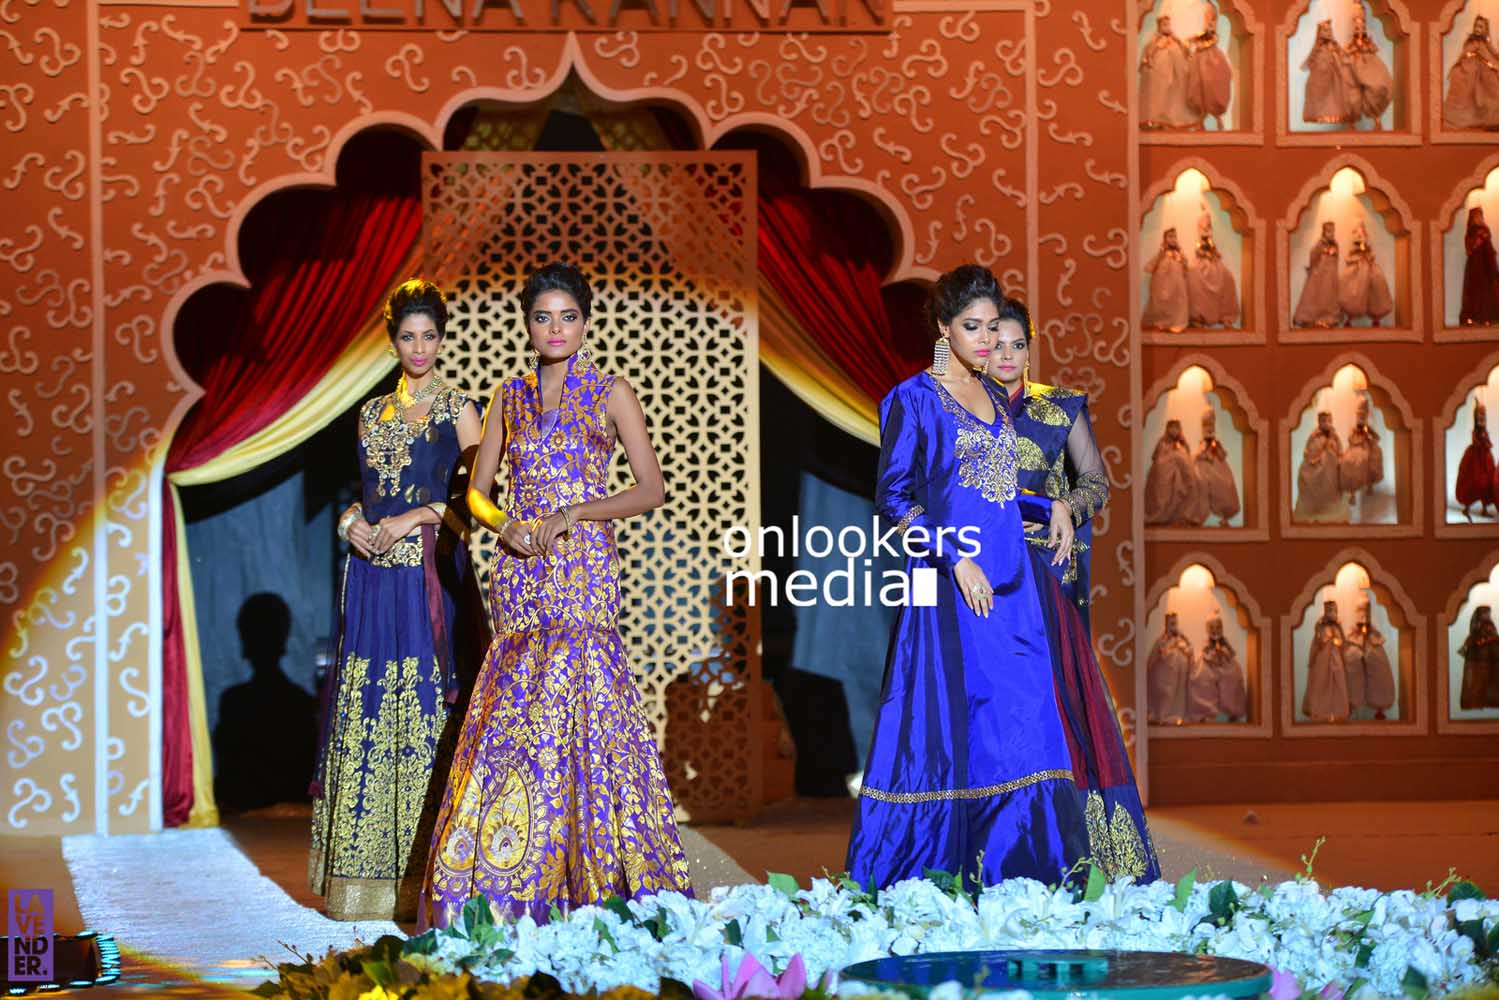 http://onlookersmedia.in/wp-content/uploads/2016/10/Beena-Kannan-Bridal-Show-2016-Stills-Photos-Seematti-126.jpg